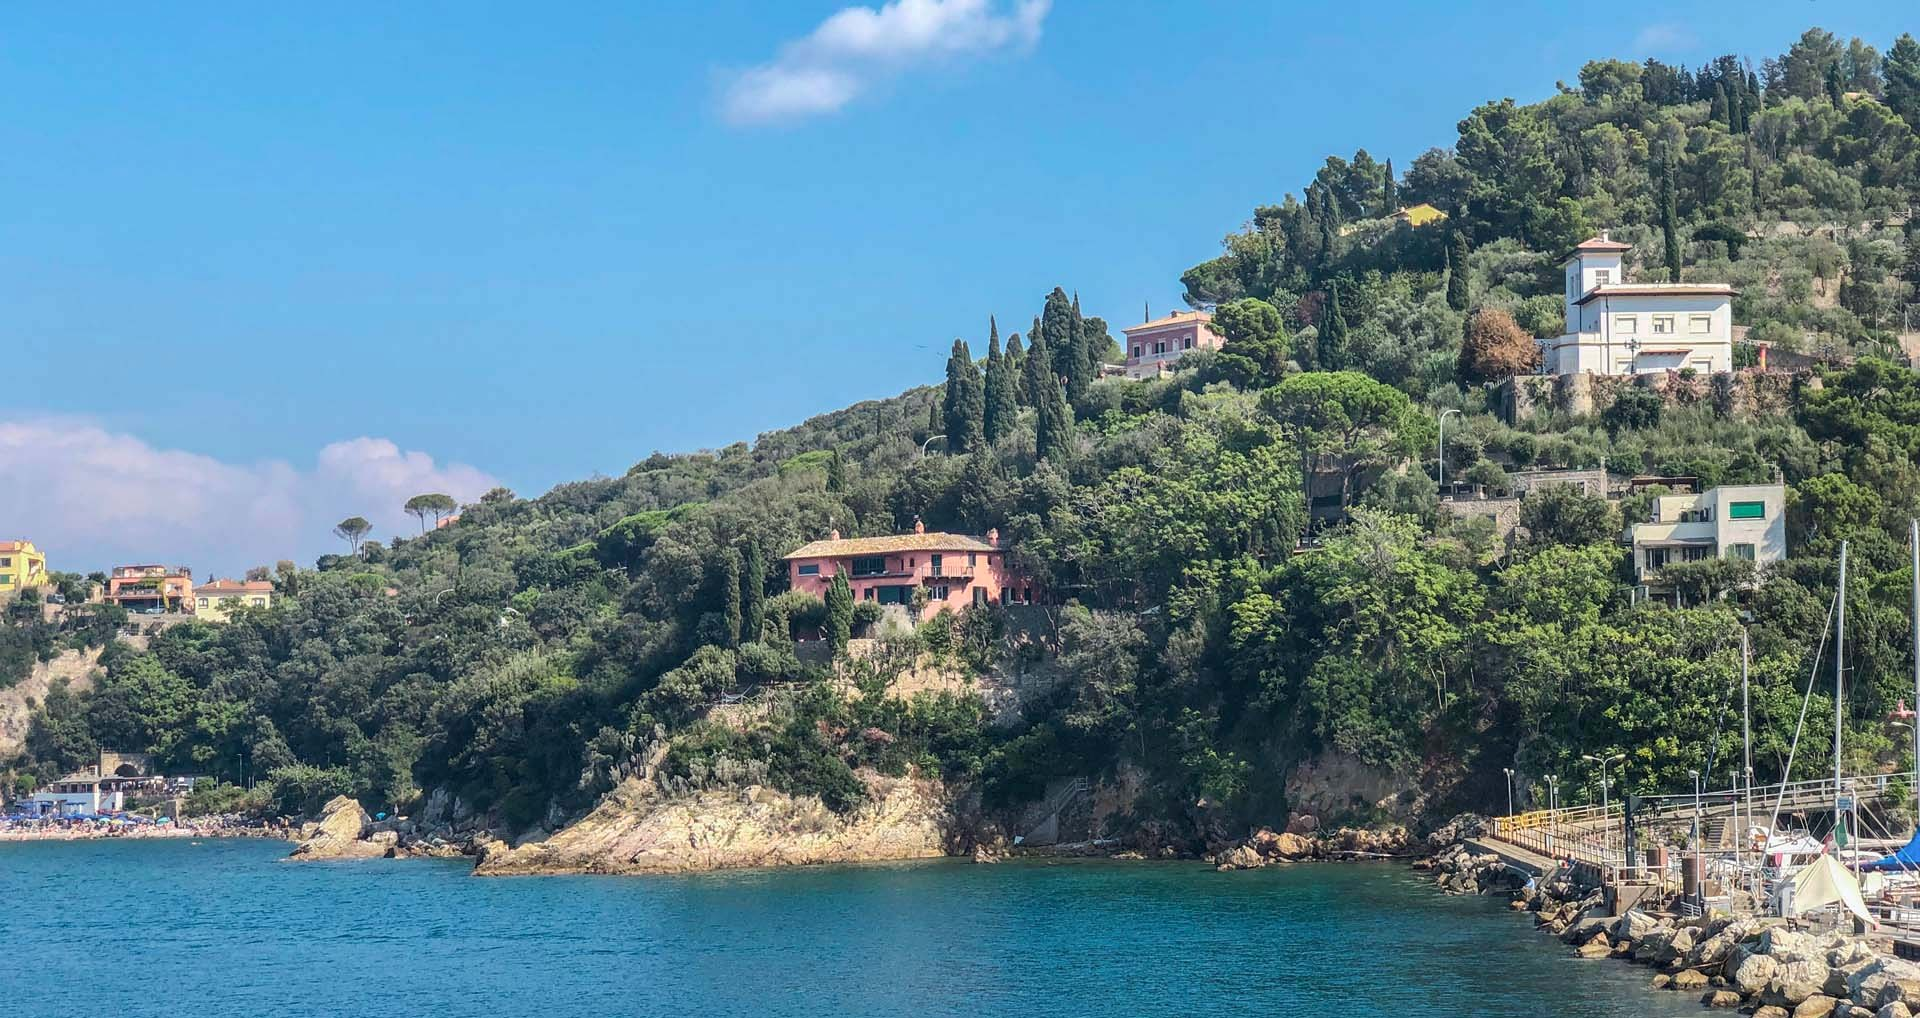 LUXURY VILLA ON THE SEASIDE FOR SALE, TUSCANY